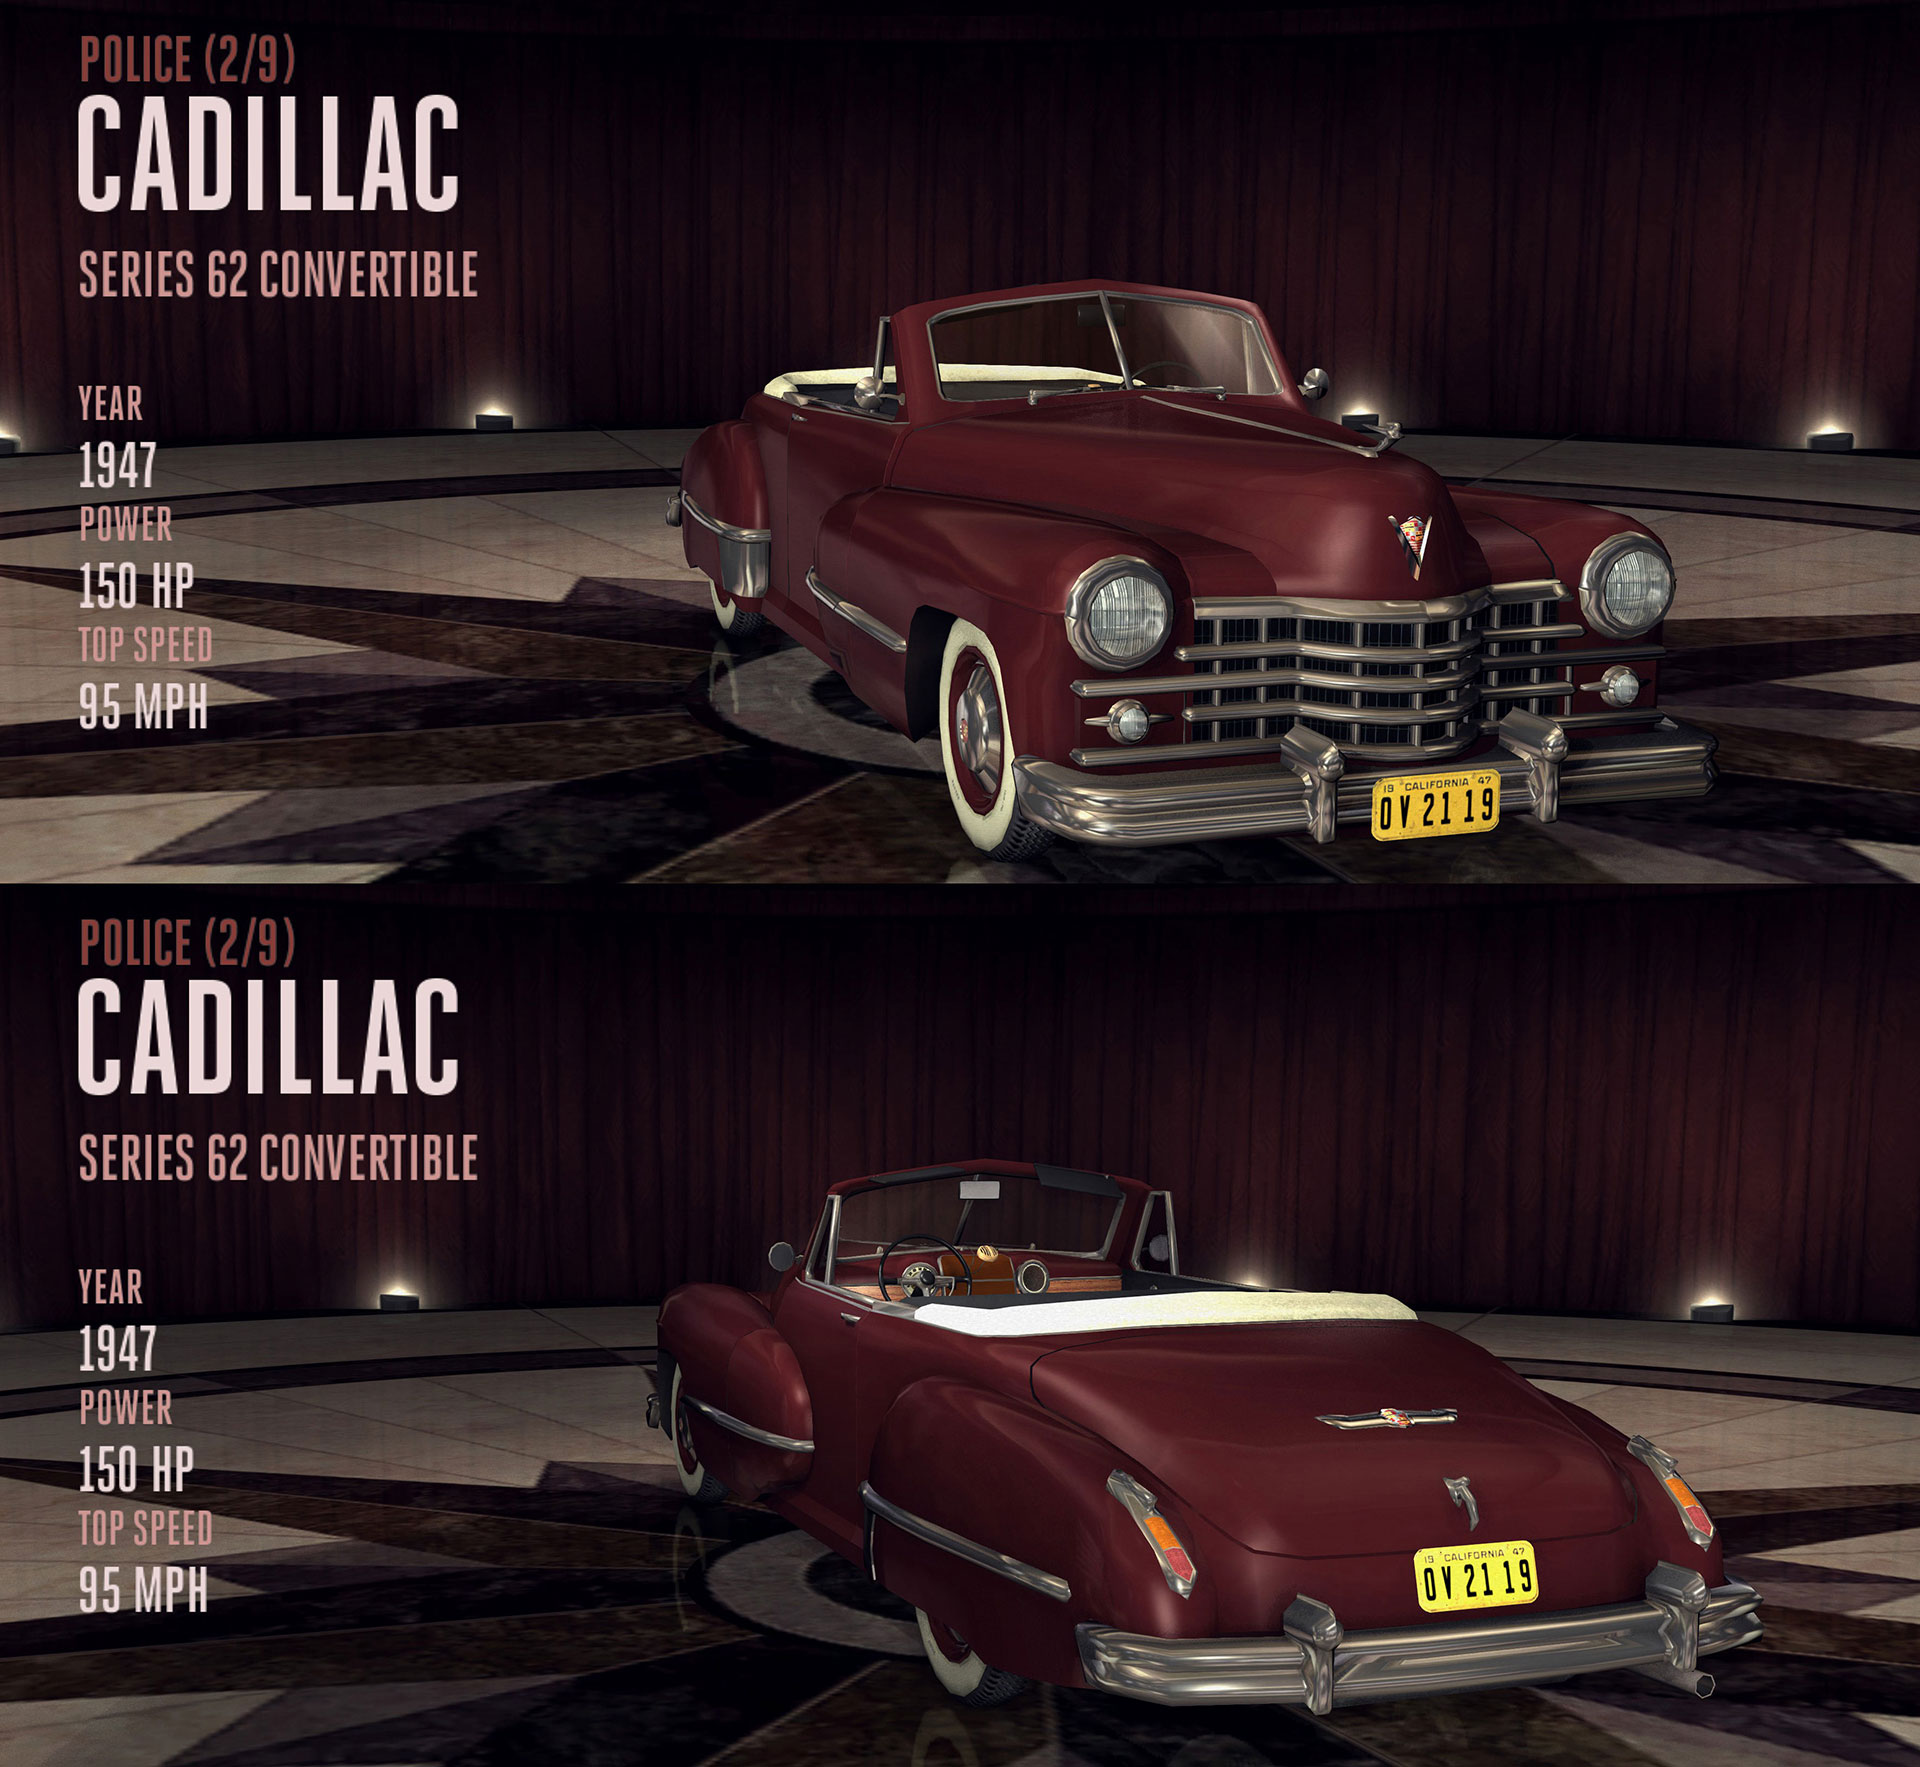 Archivo:1947-cadillac-series-62-convertible.jpg